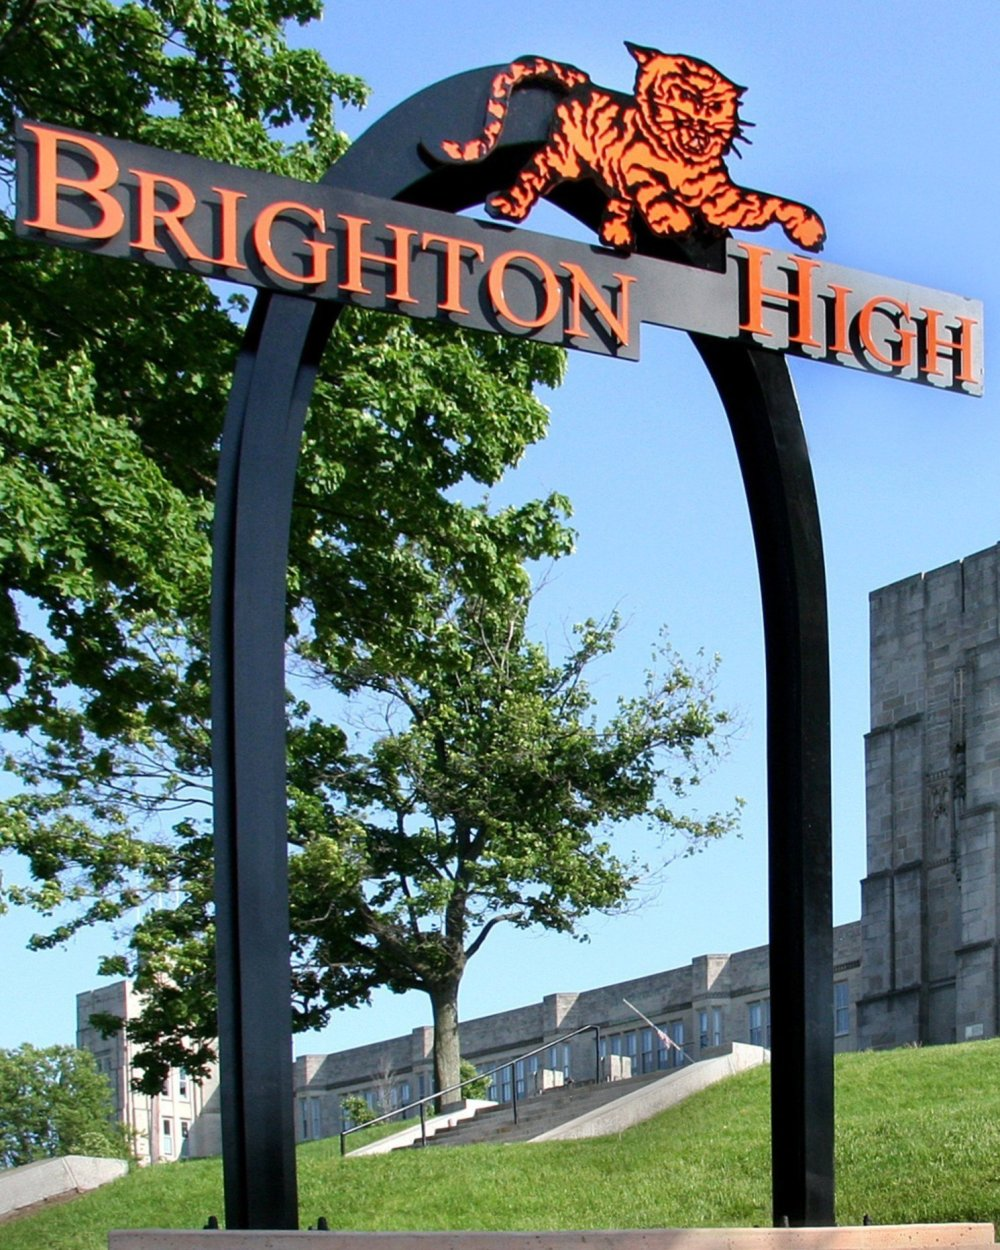 Brighton High School (Boston, MA) arch, waterjet cut, welded, fabricated, painted, & installed all by Maley